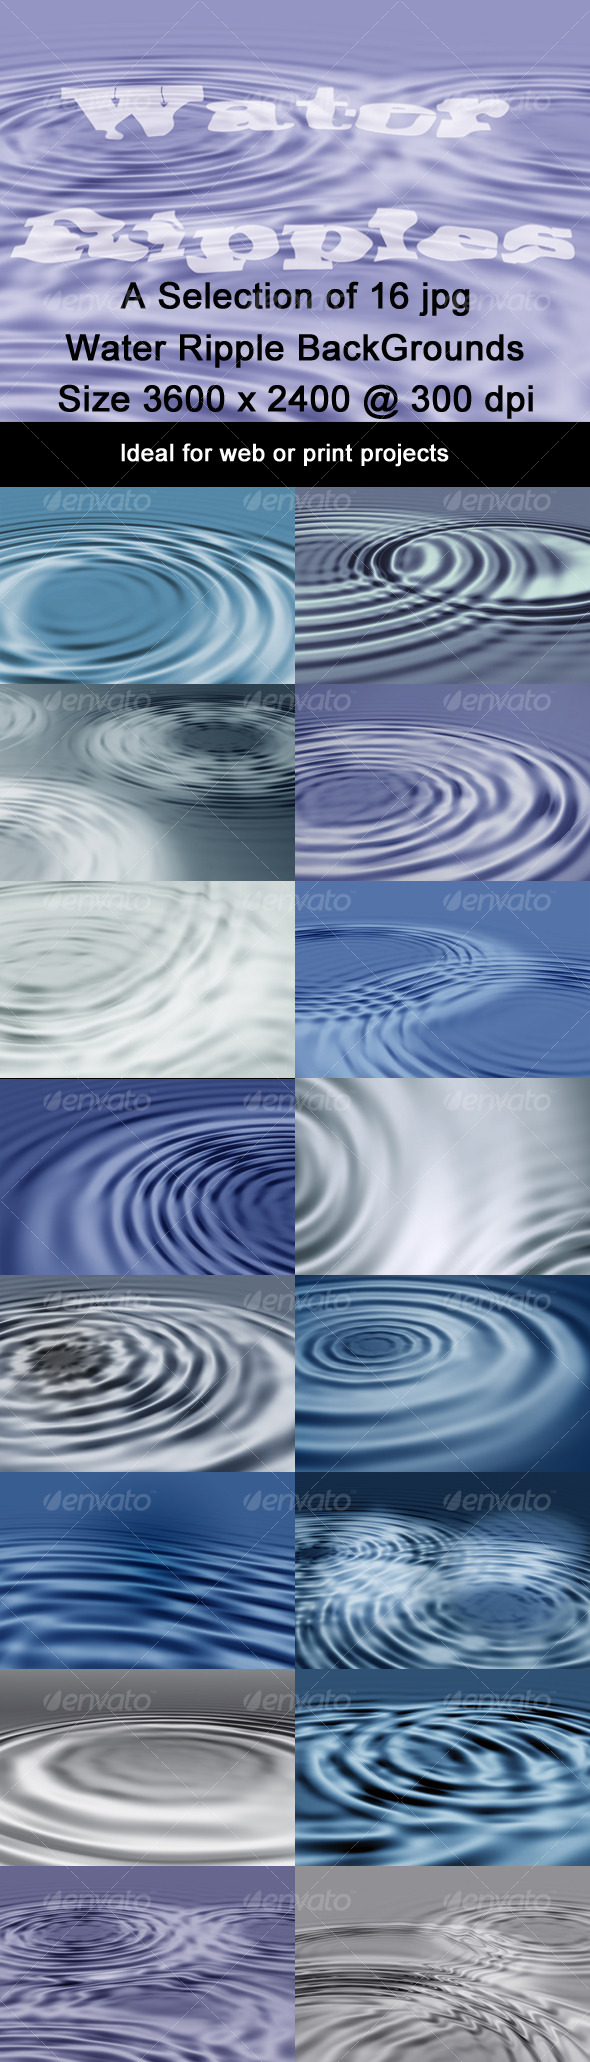 Water Ripples Background Pack - Backgrounds Graphics